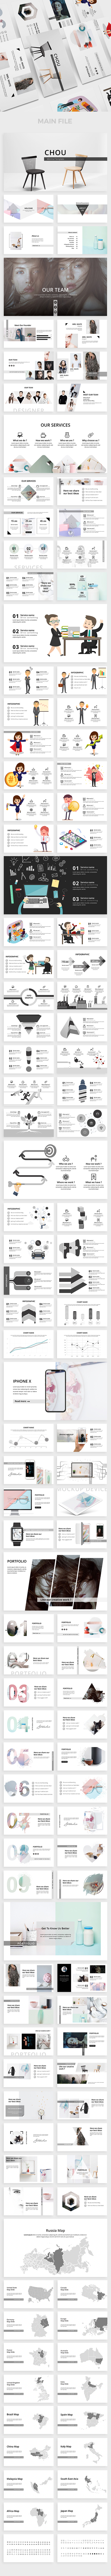 Chou Minimal Google Slide Template - Google Slides Presentation Templates